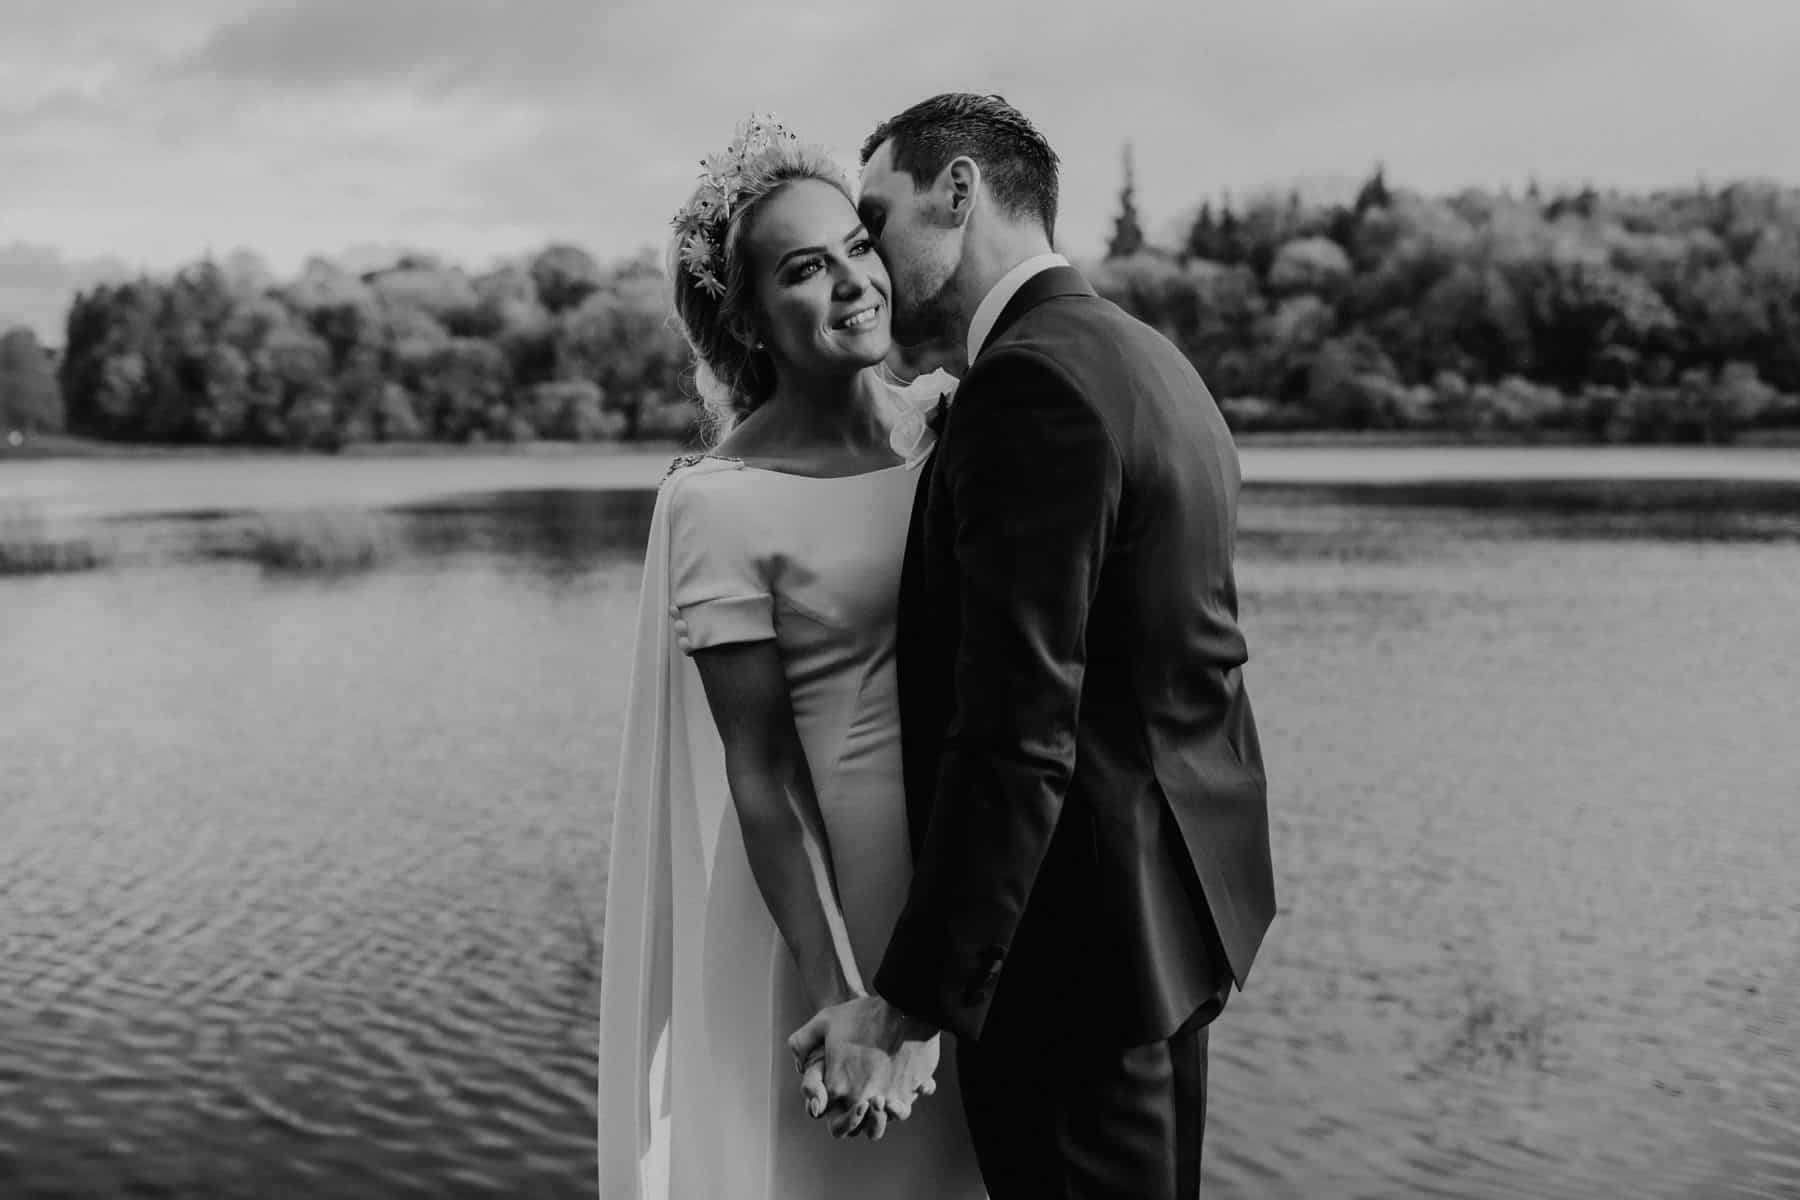 Edel and Colm - Castle Leslie Ireland